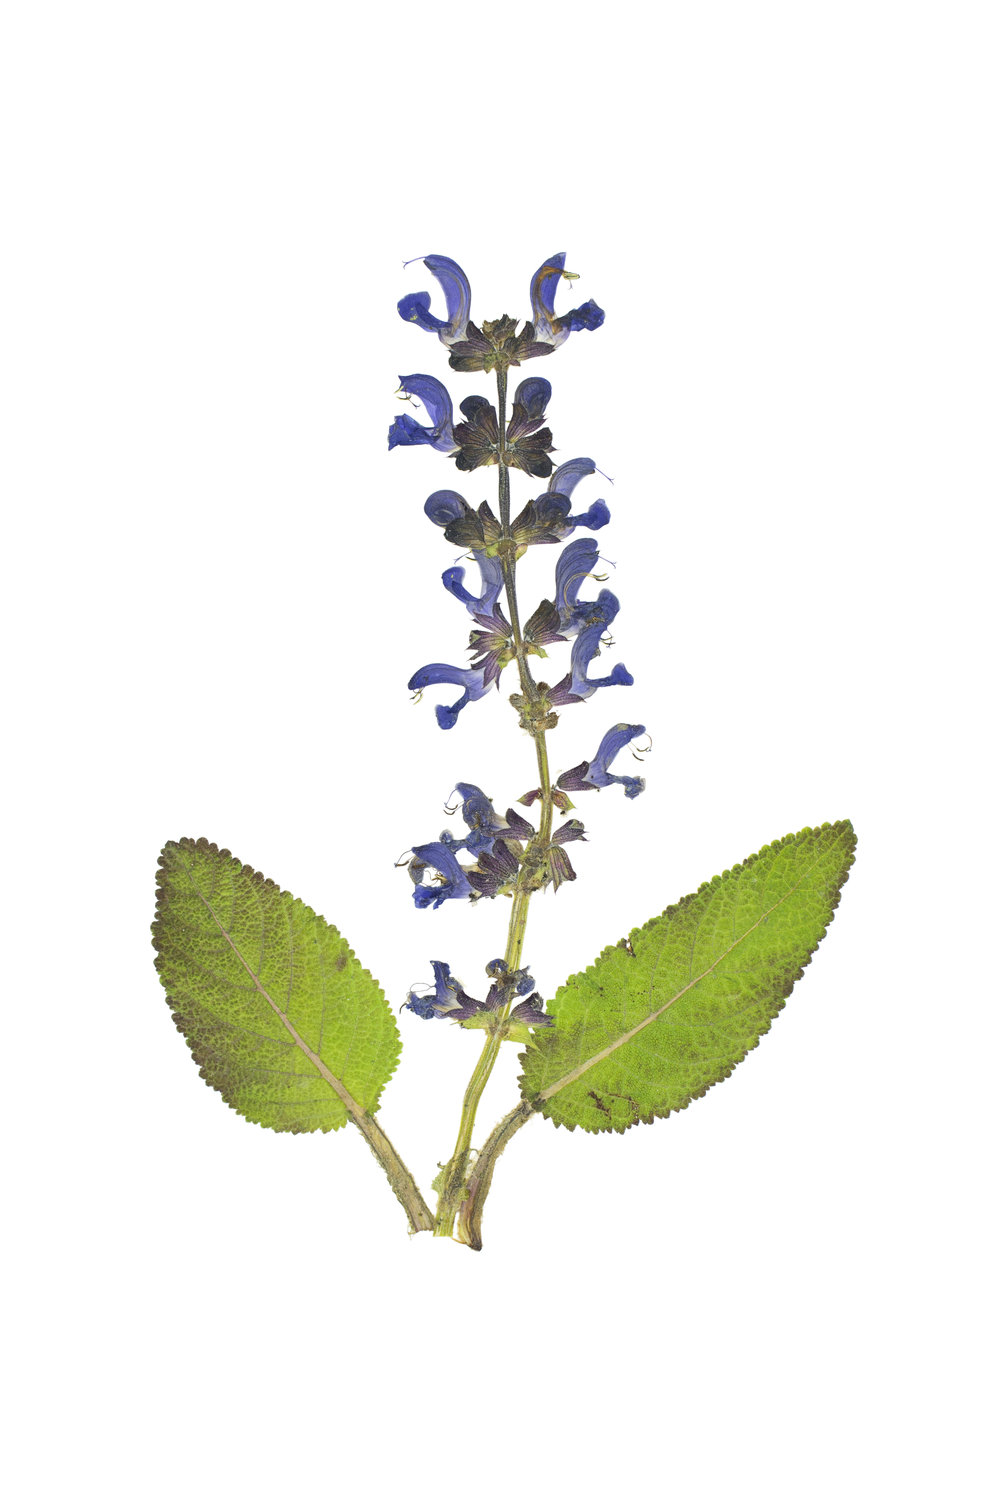 Meadow Clary / Salvia pratensis